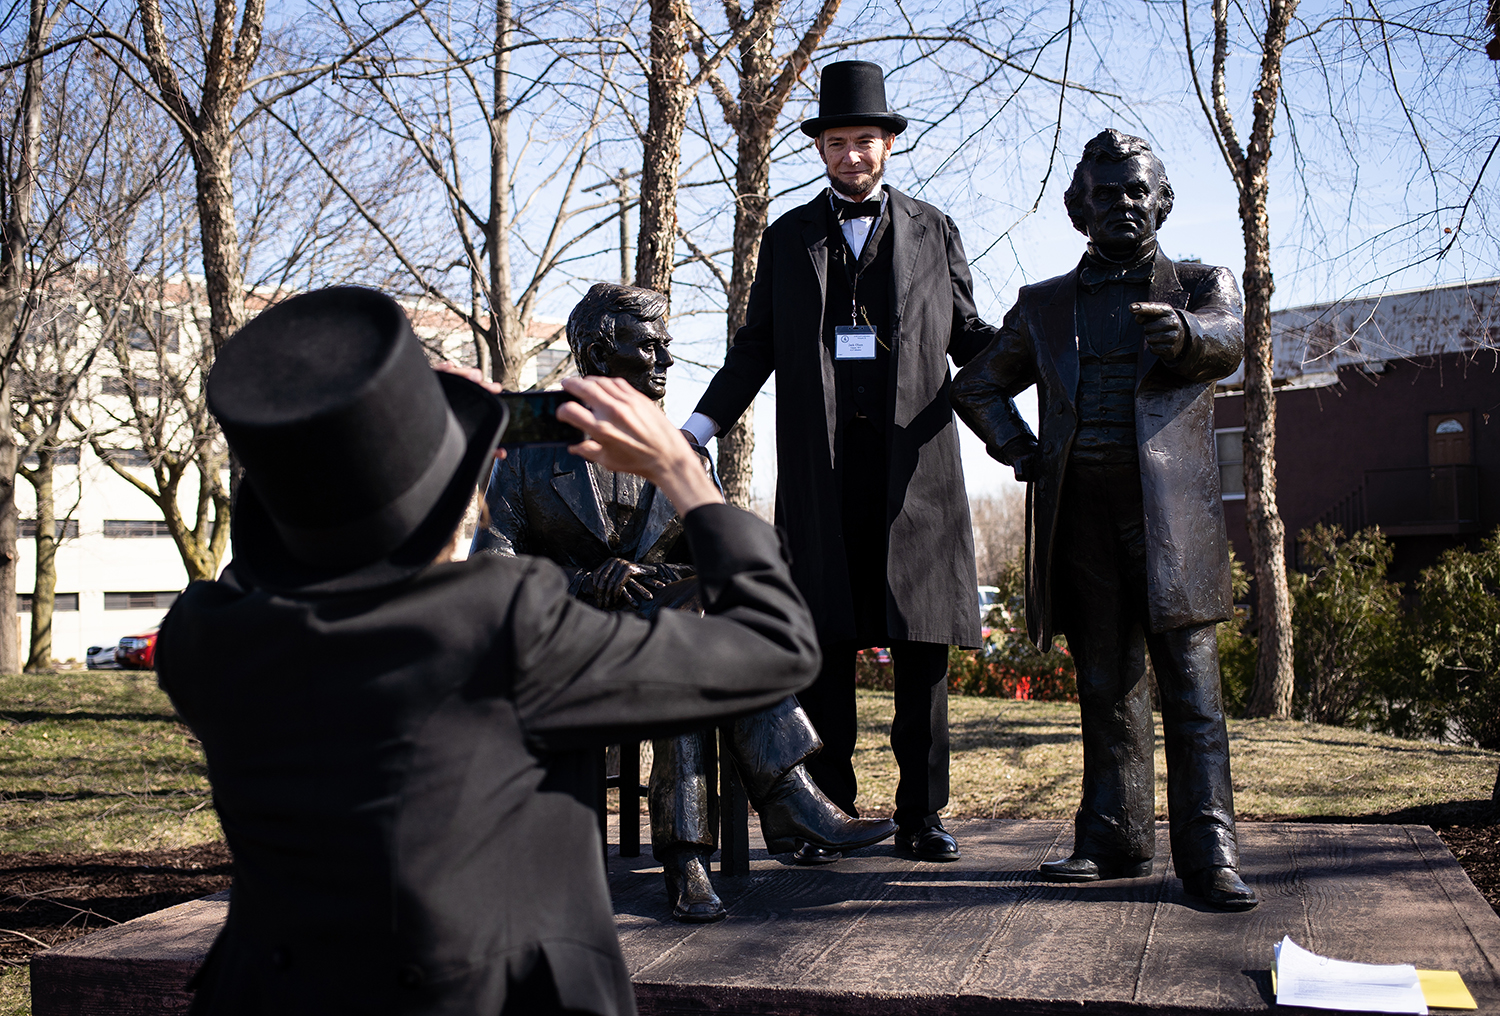 Danny Russell snaps a photo of Jack Olsen in Debate Square, the site of a Lincoln-Douglas debate in Freeport, Ill. during the Association of Lincoln Presenters annual convention Friday, April 20, 2018 in Freeport. [Rich Saal/The State Journal-Register]